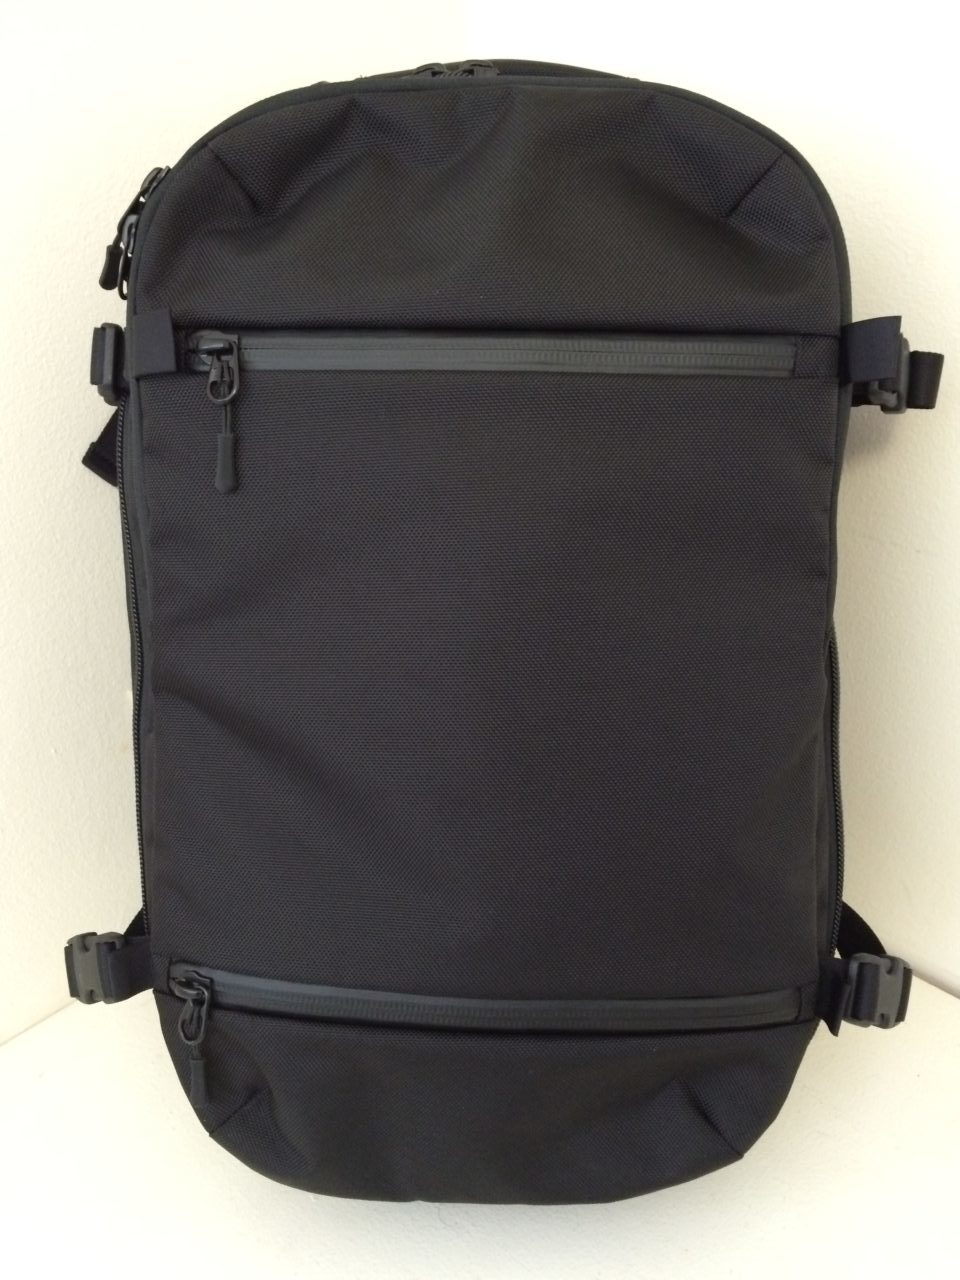 Aer Travel Pack front